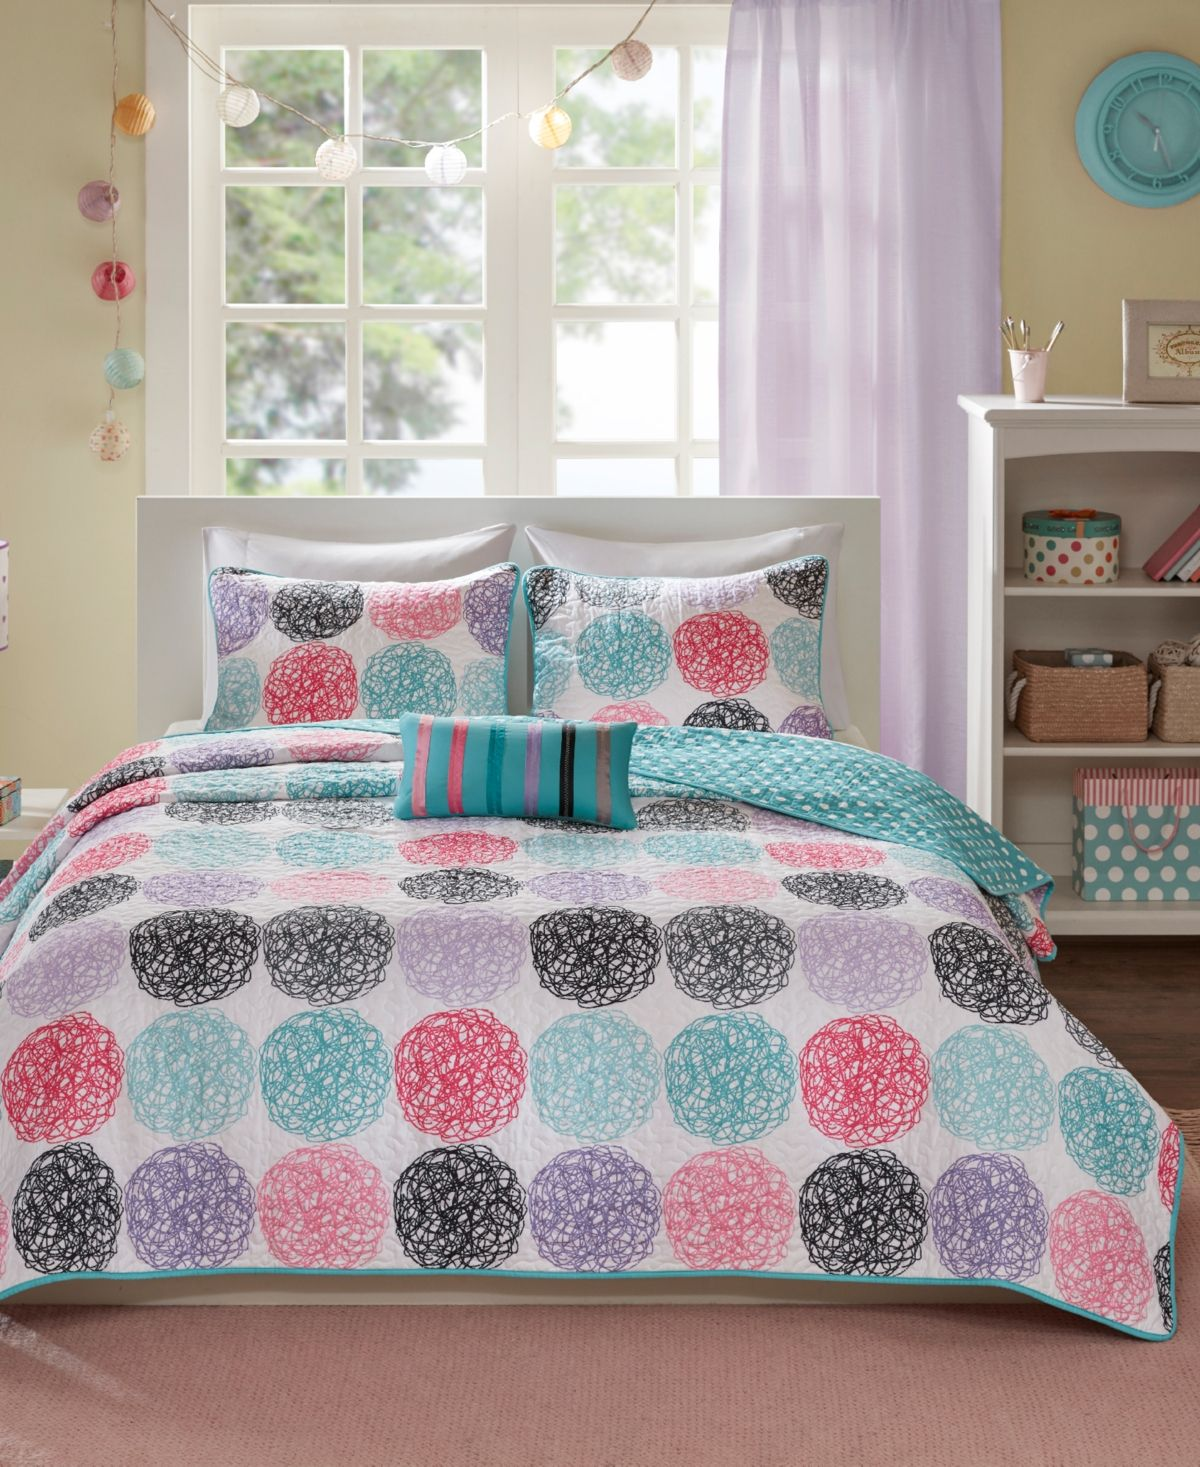 Twin XL Full Queen Size Bed Purple Teal Pink Black Polka Dot 4 pc Comforter Set